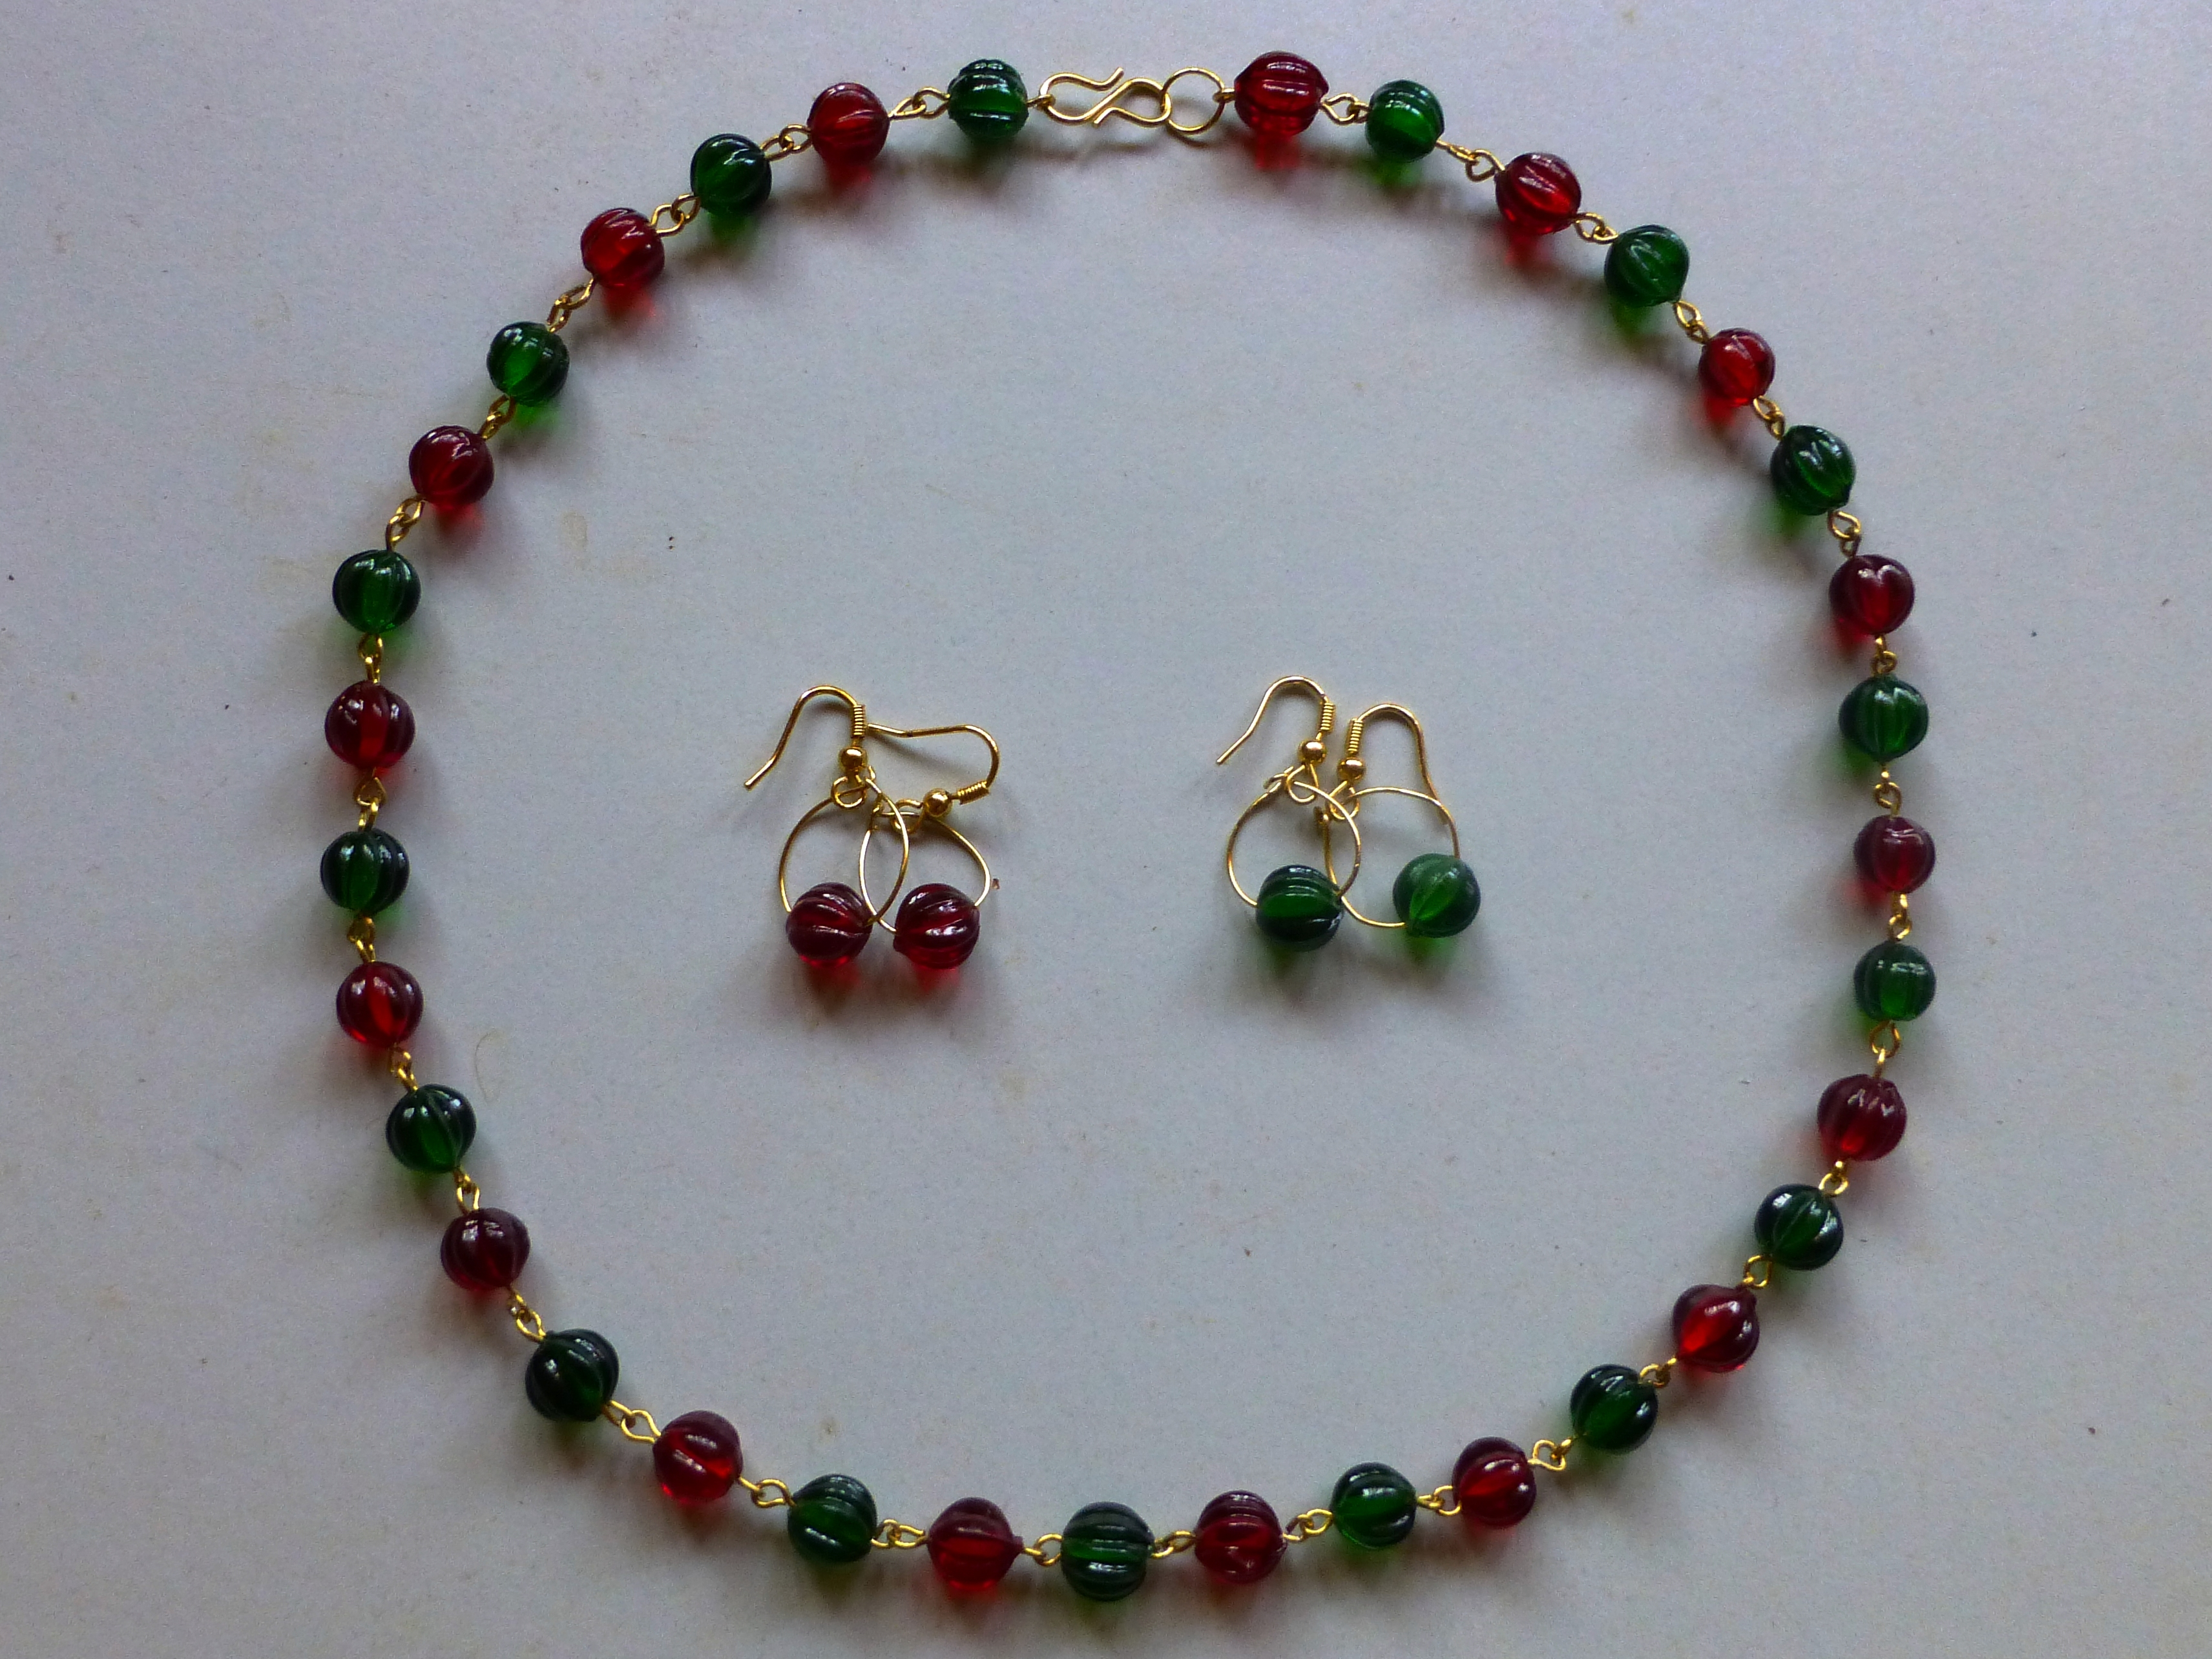 Crystal Beaded Necklace With Earrings